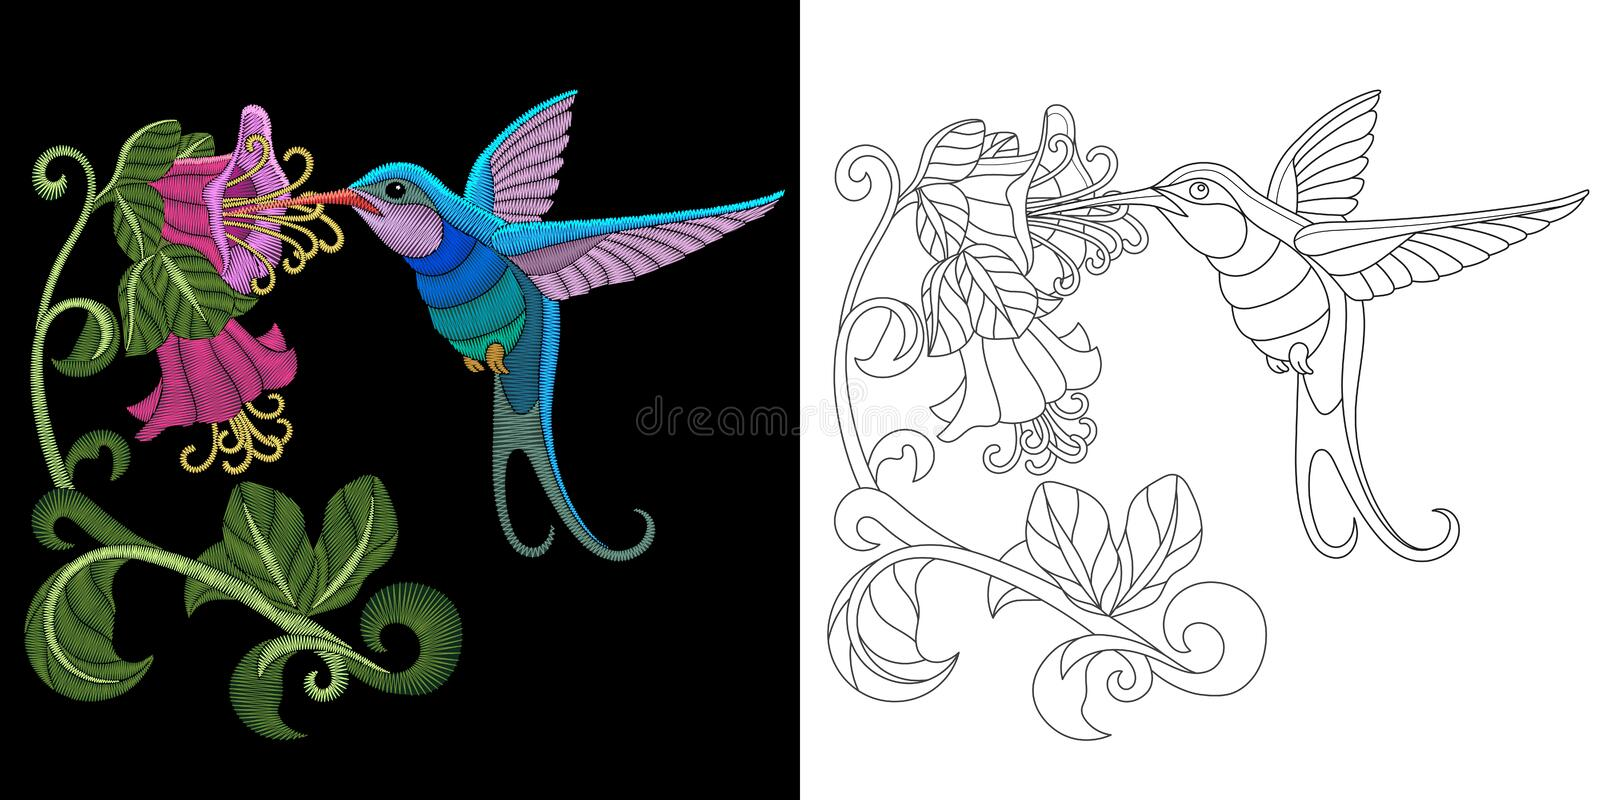 Embroidery hummingbird design stock photography